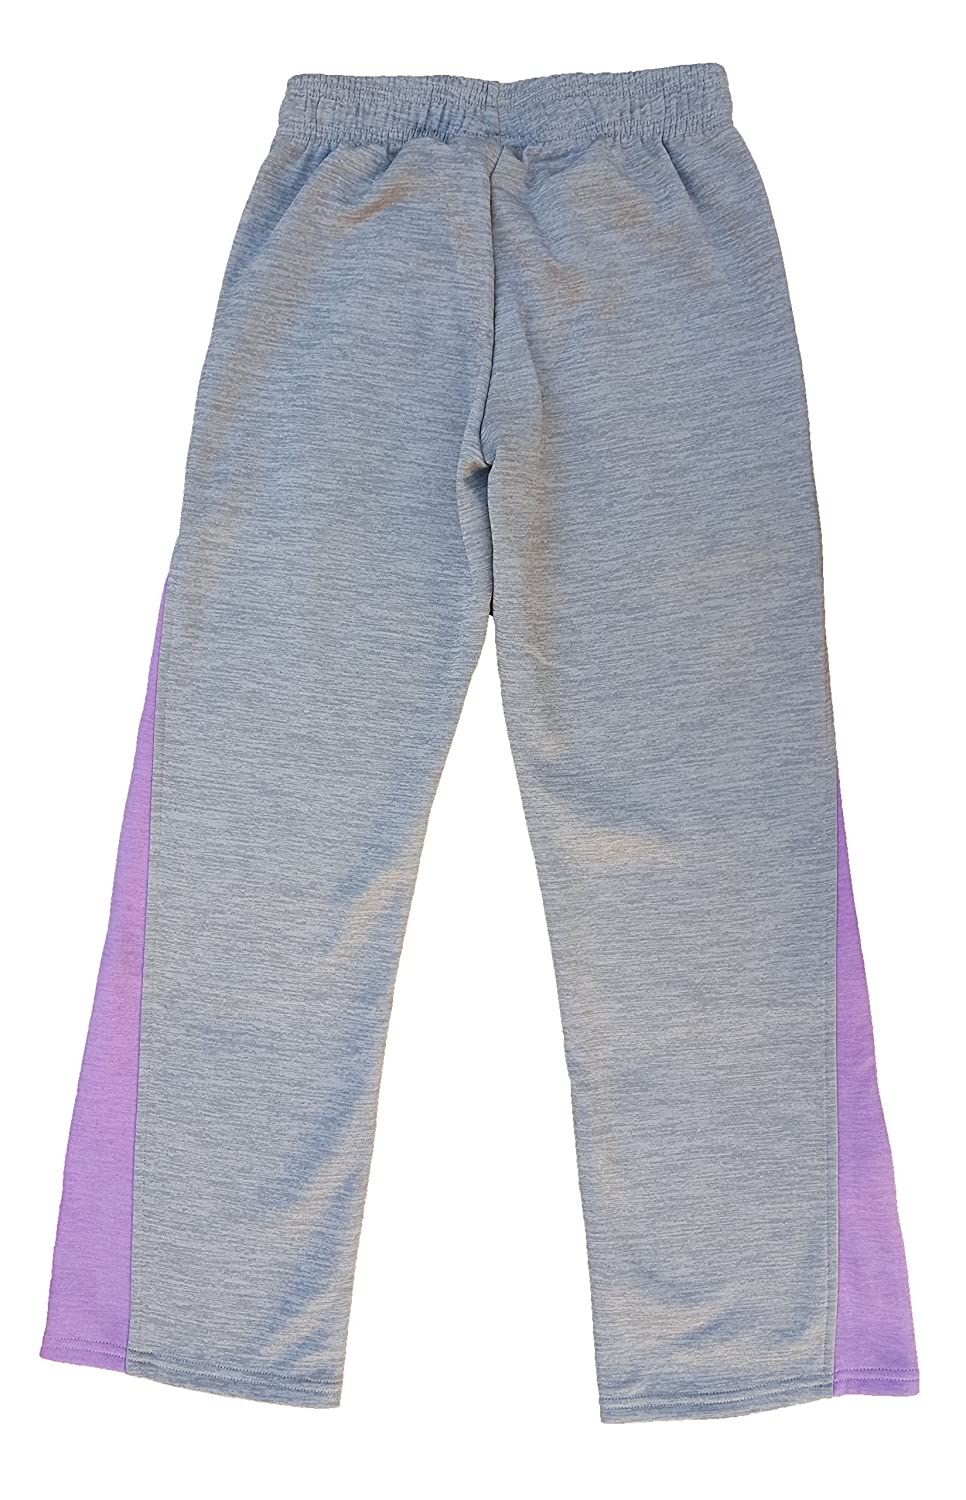 Under Armour Girls Cold Gear Infrared Sweat Pants Gray Purple Youth Small